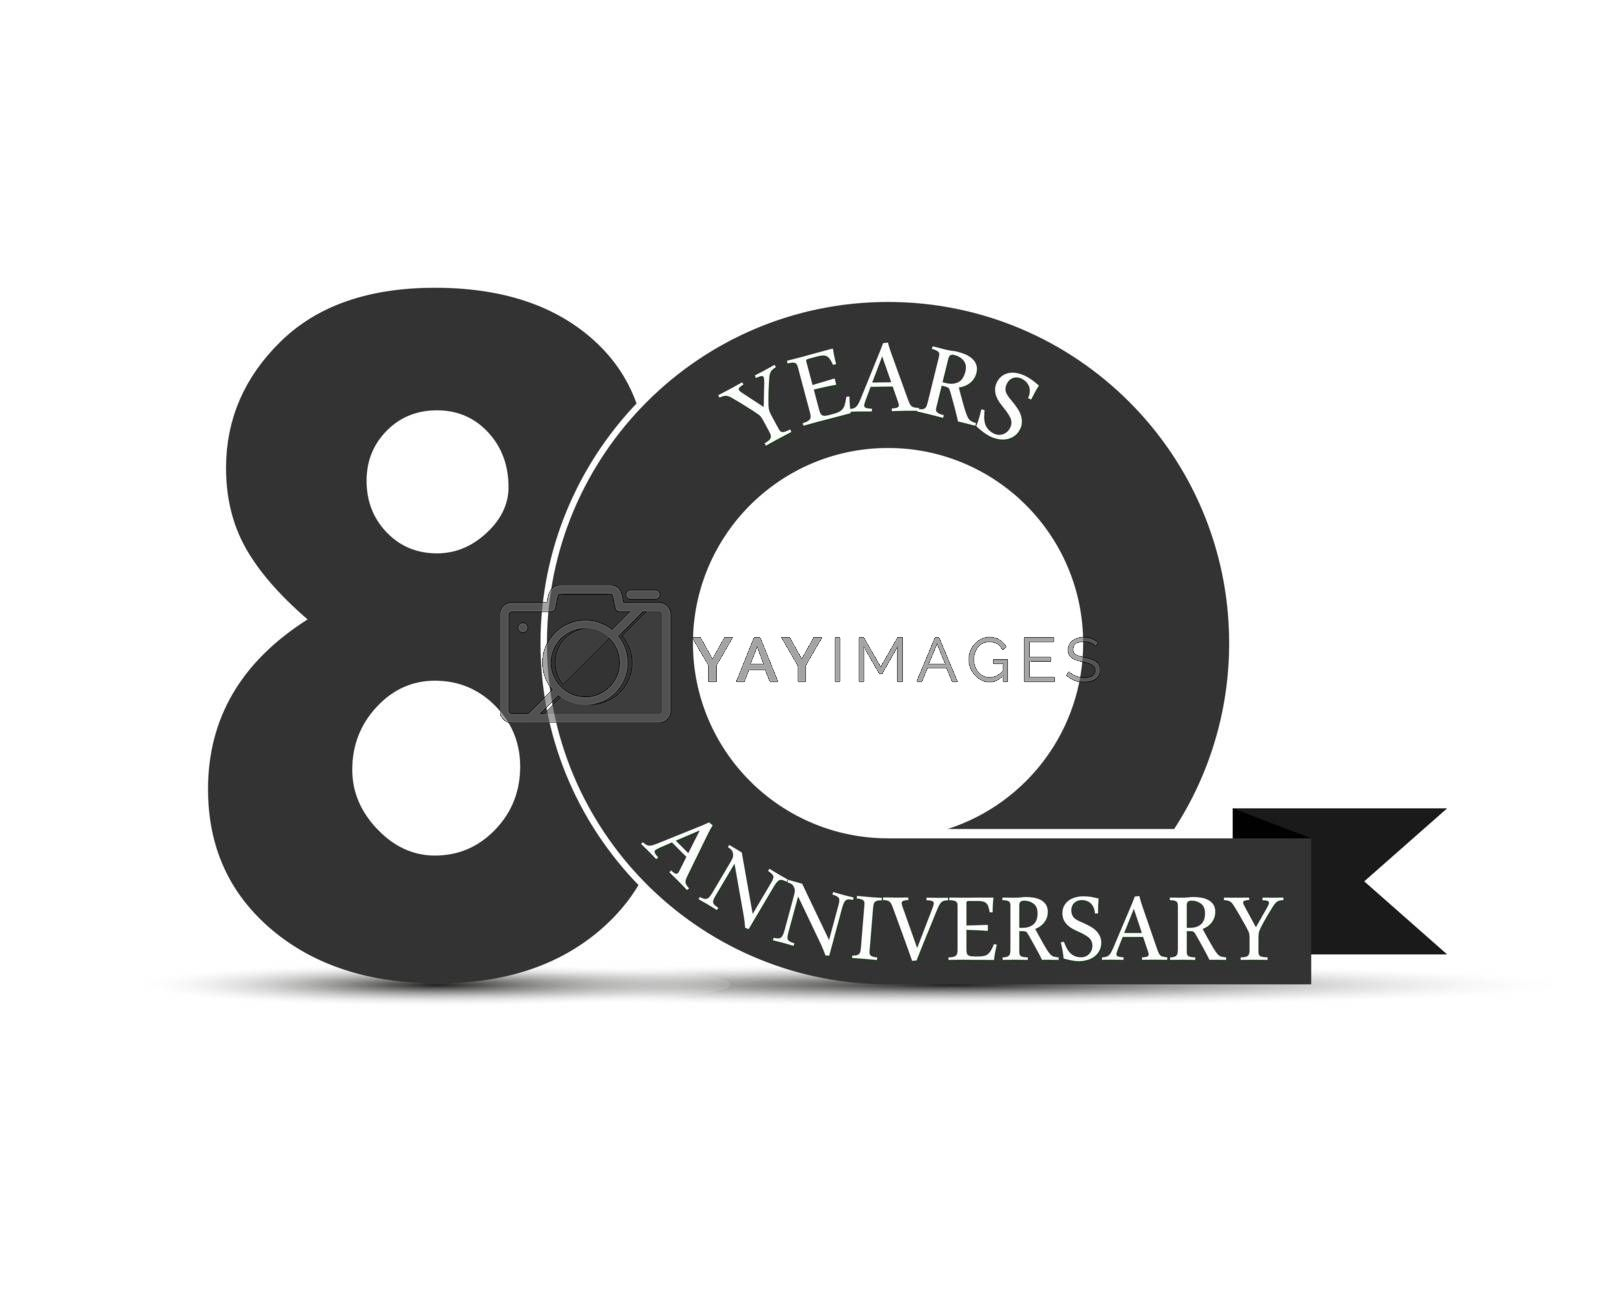 90 years anniversary, simple design, logo for decoration